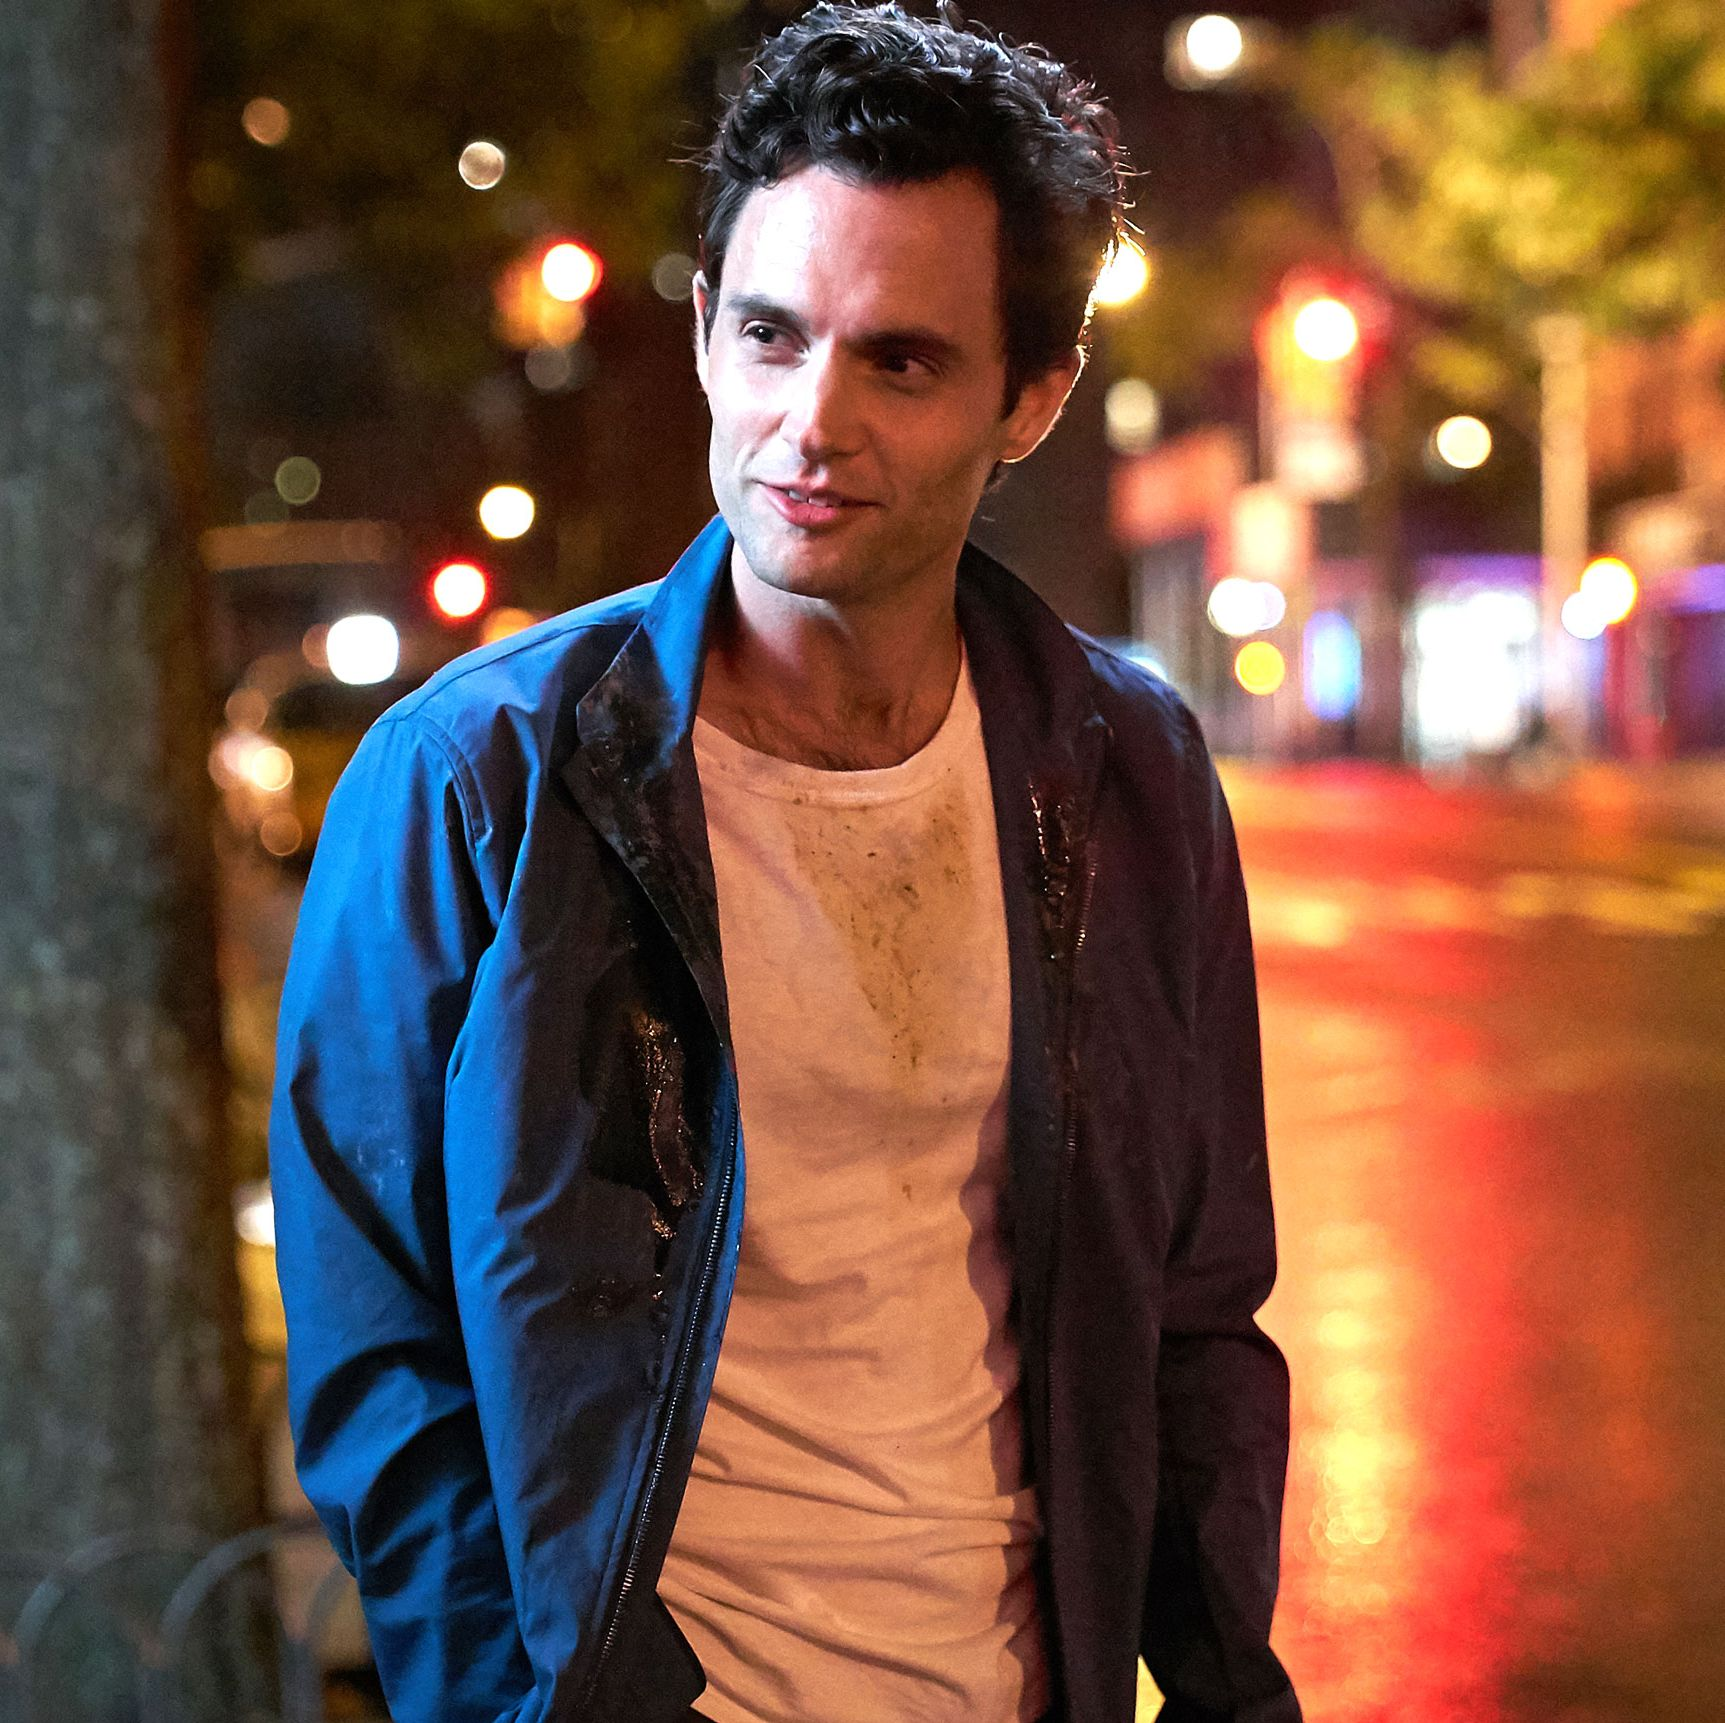 """Penn Badgley reveals fears that Netflix's You """"could have been really irresponsible"""""""